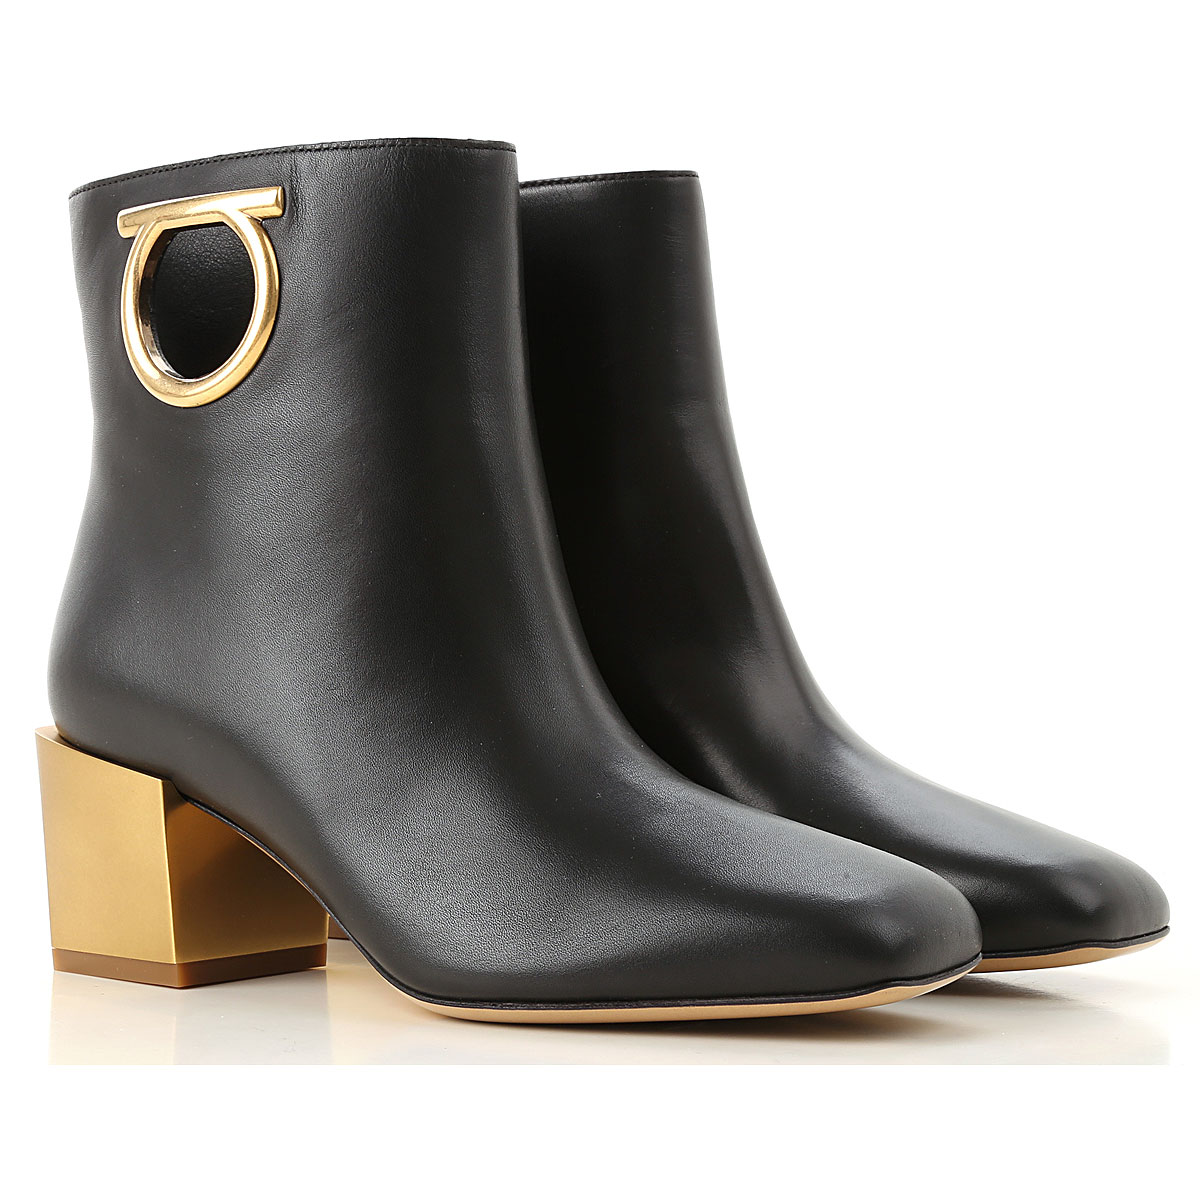 Salvatore Ferragamo Boots for Women, Booties On Sale in Outlet, Black, Leather, 2019, 6 8 8.5 9.5